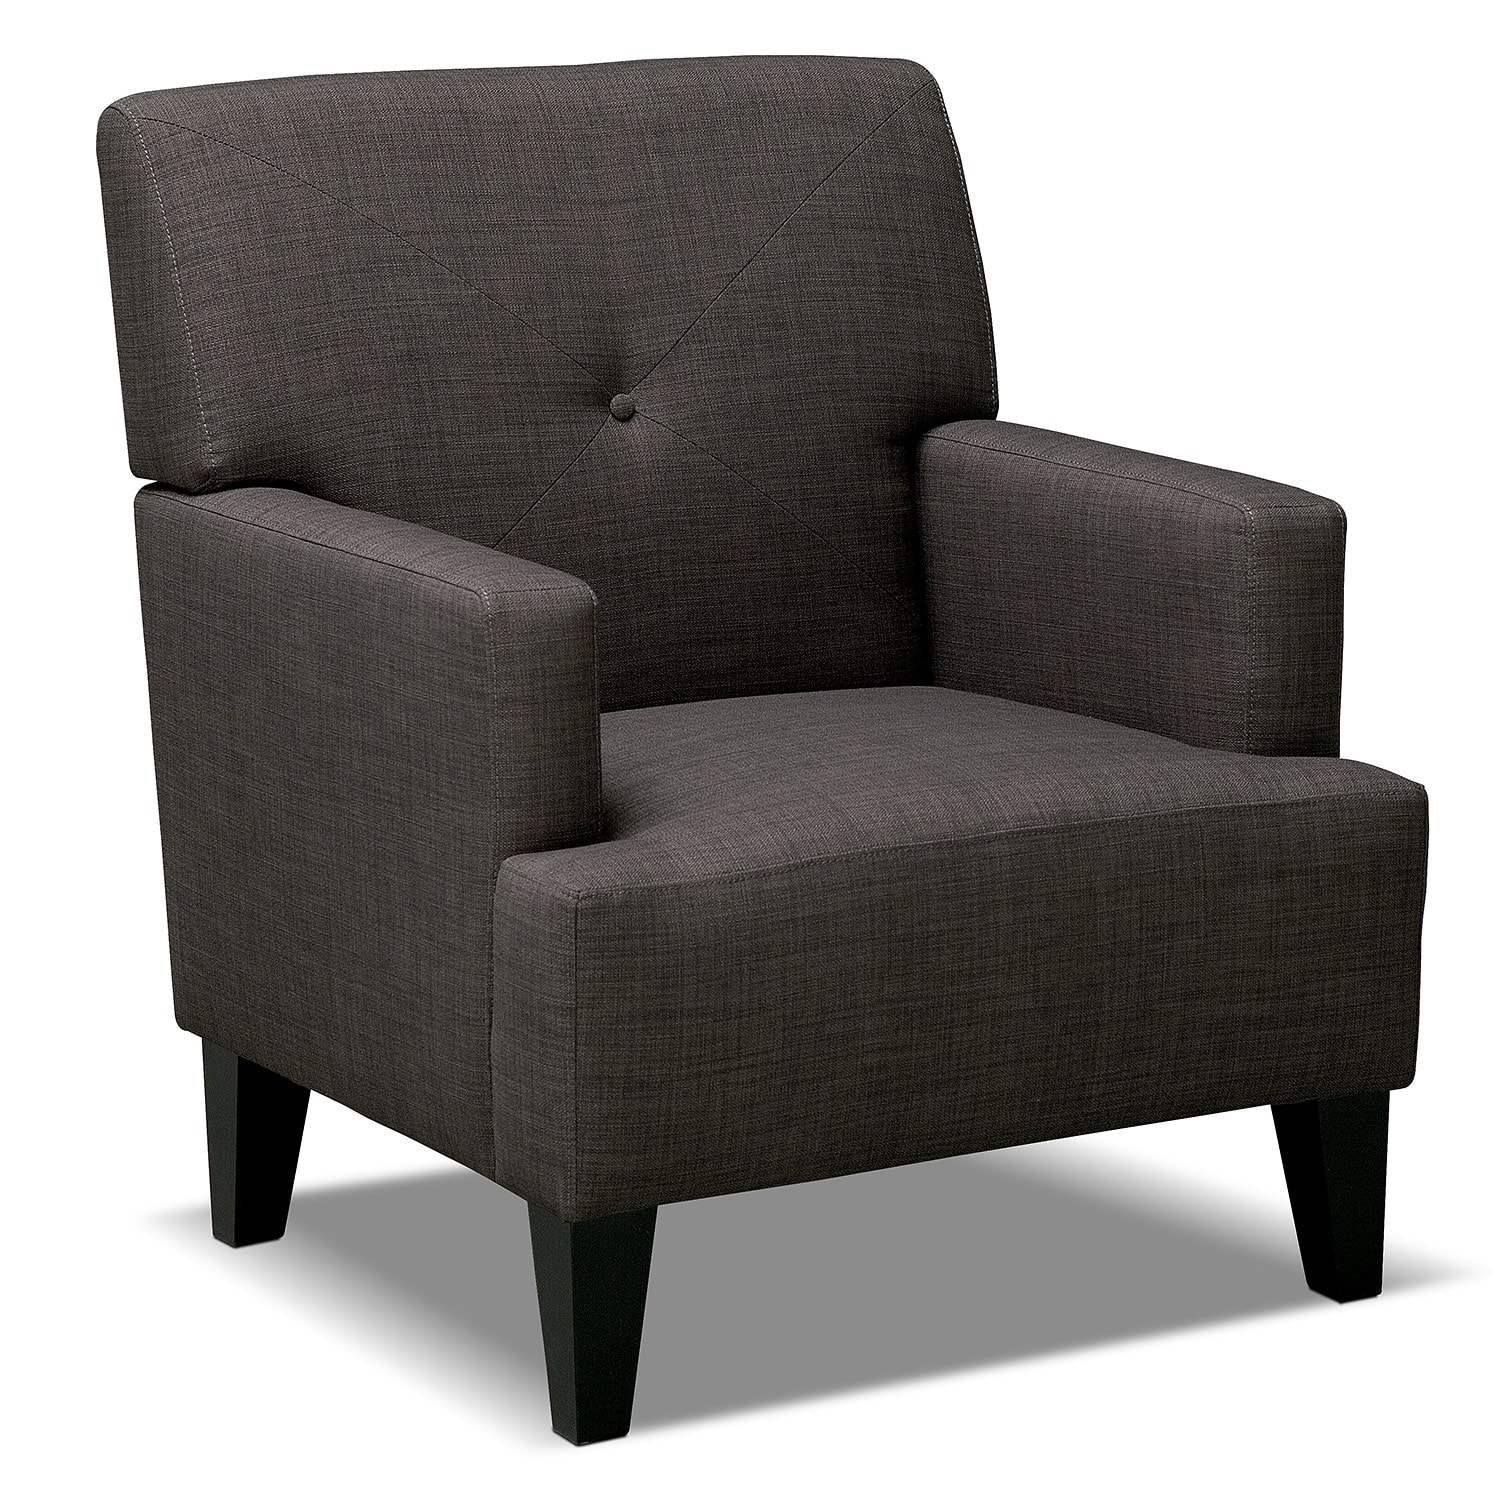 Avalon accent chair value city furniture for Sitting room chairs